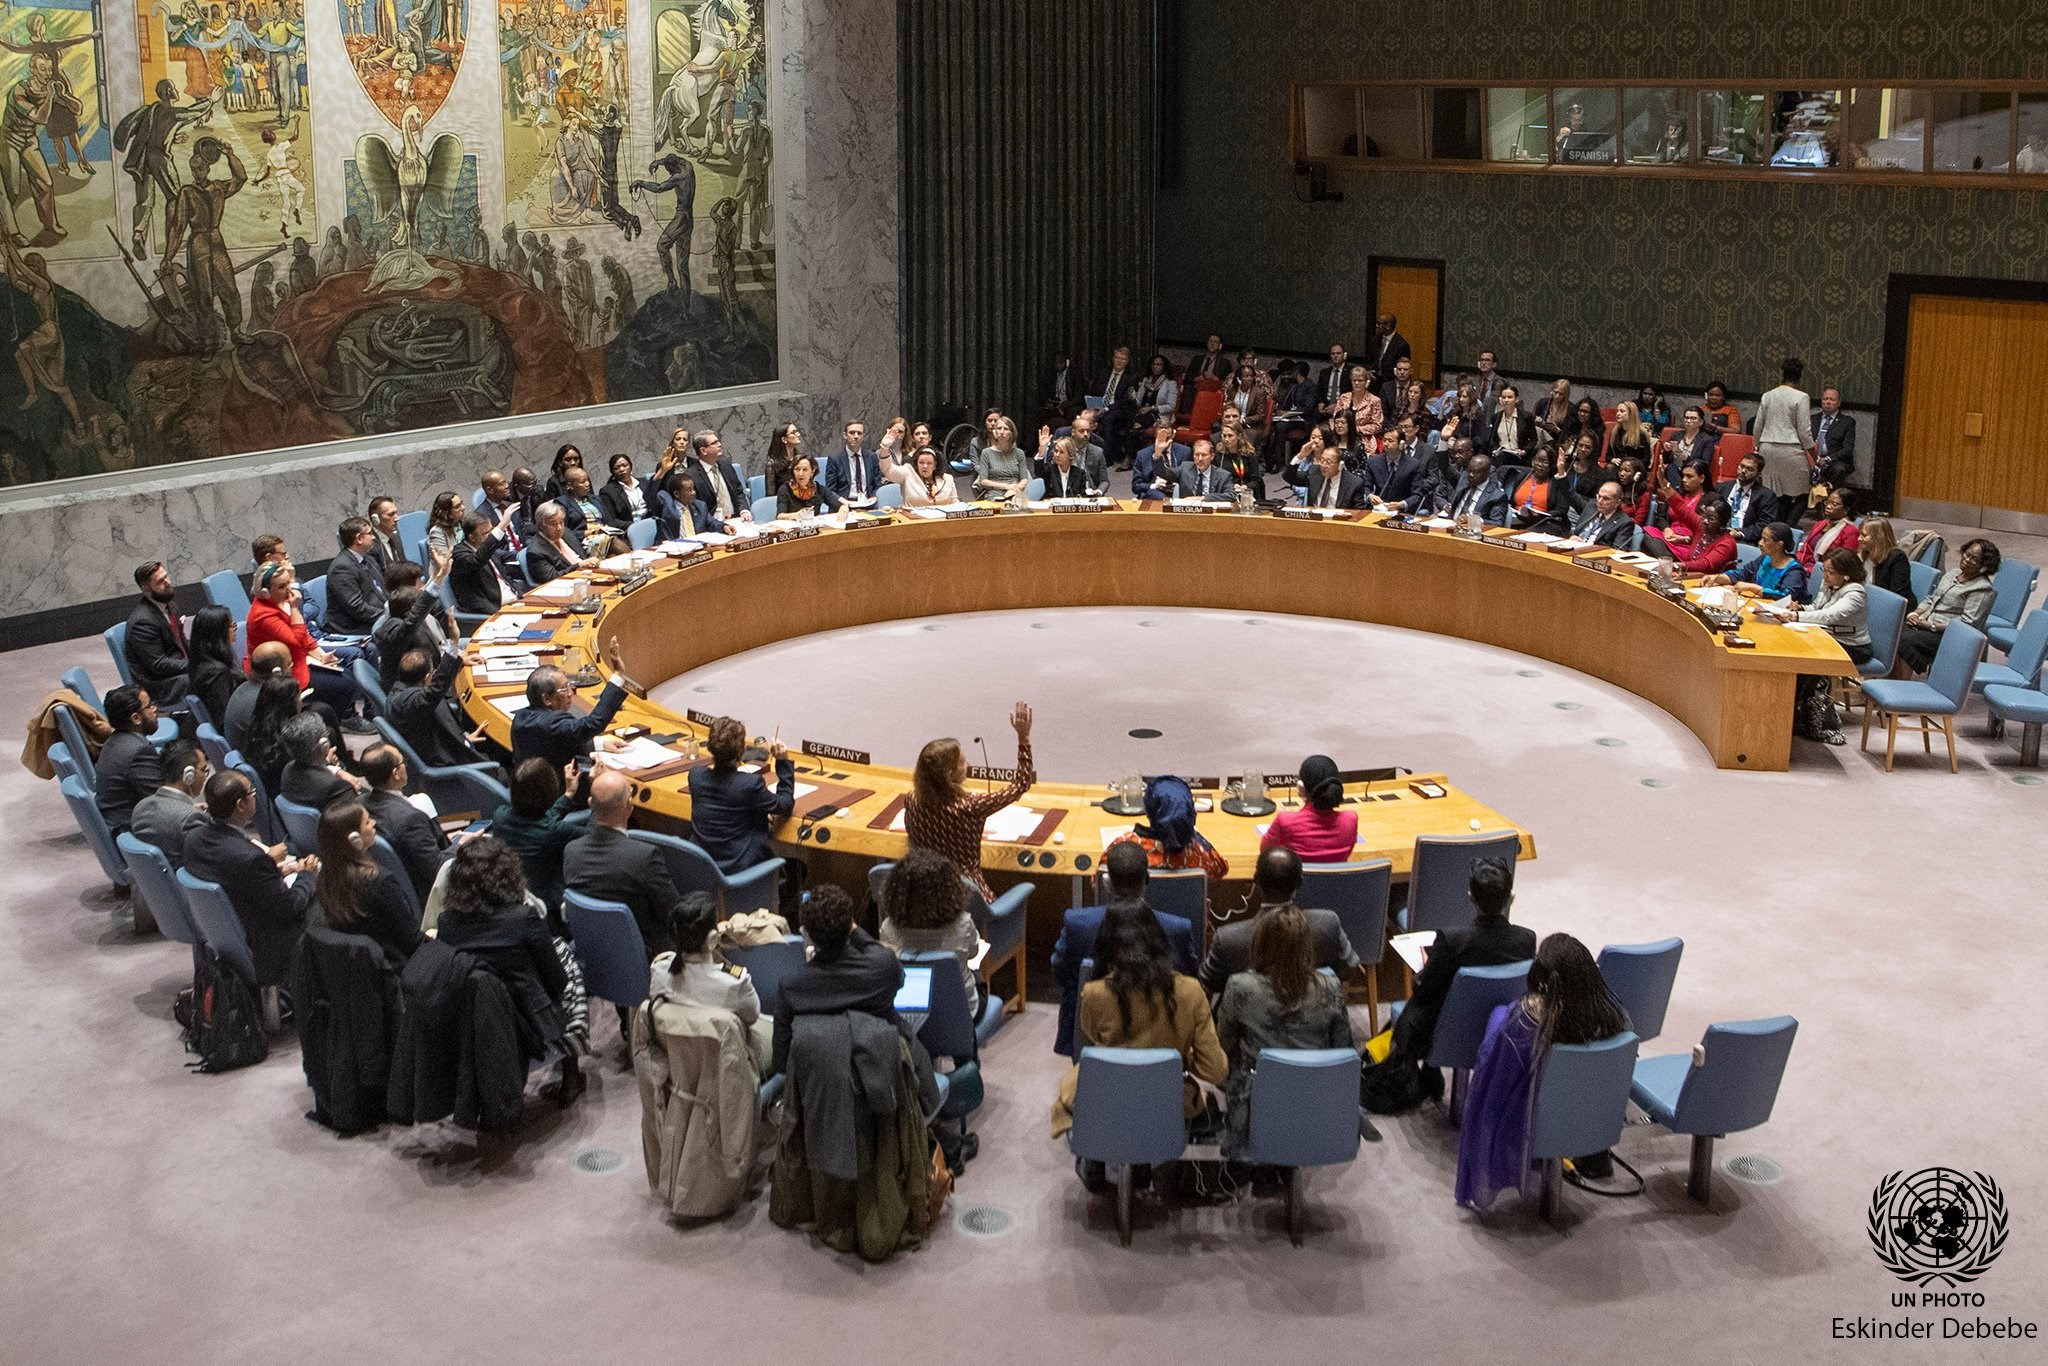 The United Nations Security Council Unanimously Adopts New Resolution On Women, Peace and Security